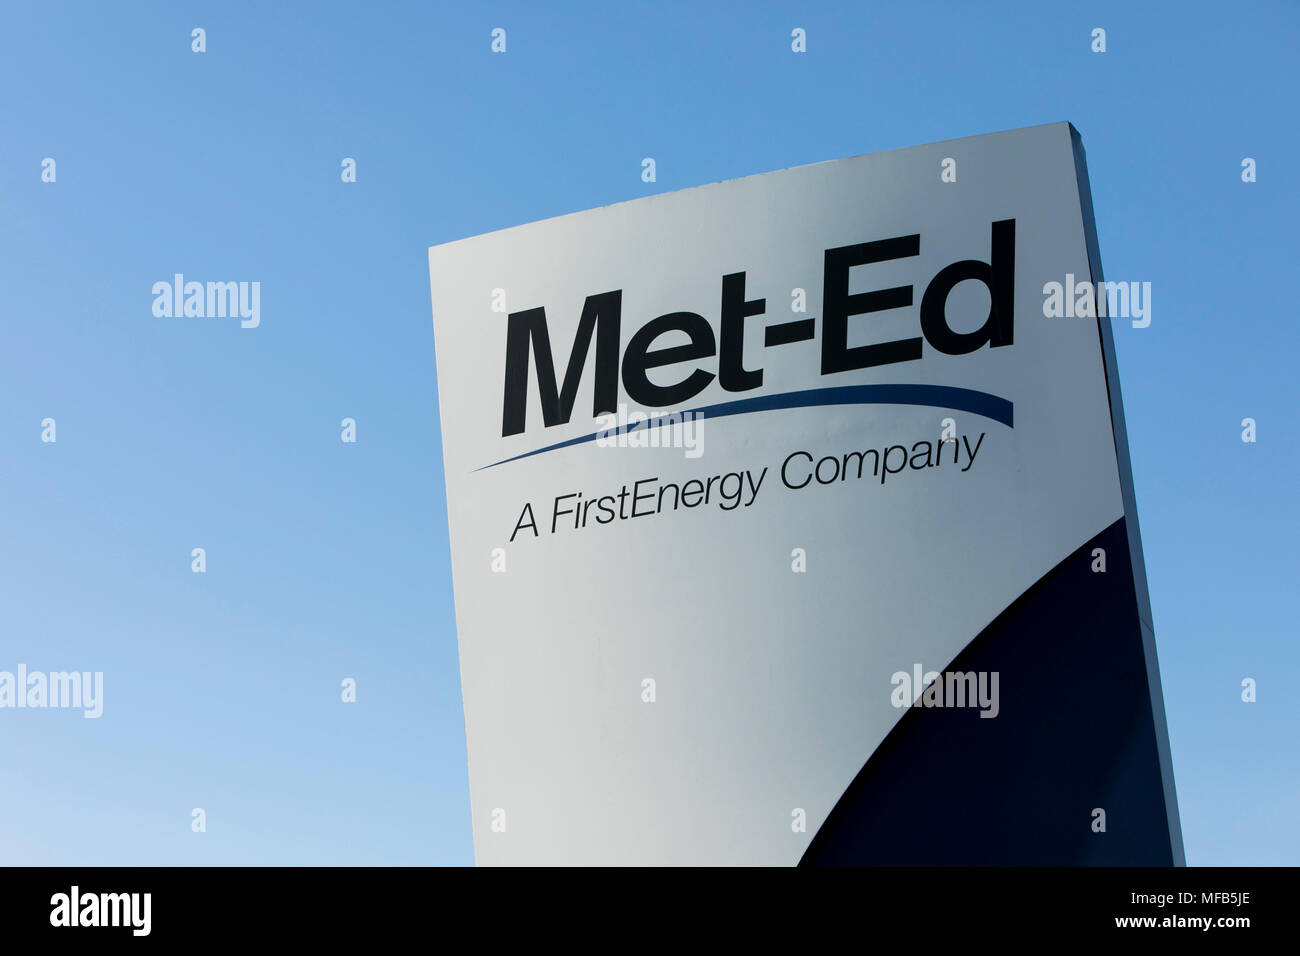 A logo sign outside of the headquarters of Met-Ed, a subsidiary of FirstEnergy, in Reading, Pennsylvania, on April 22, 2018. - Stock Image